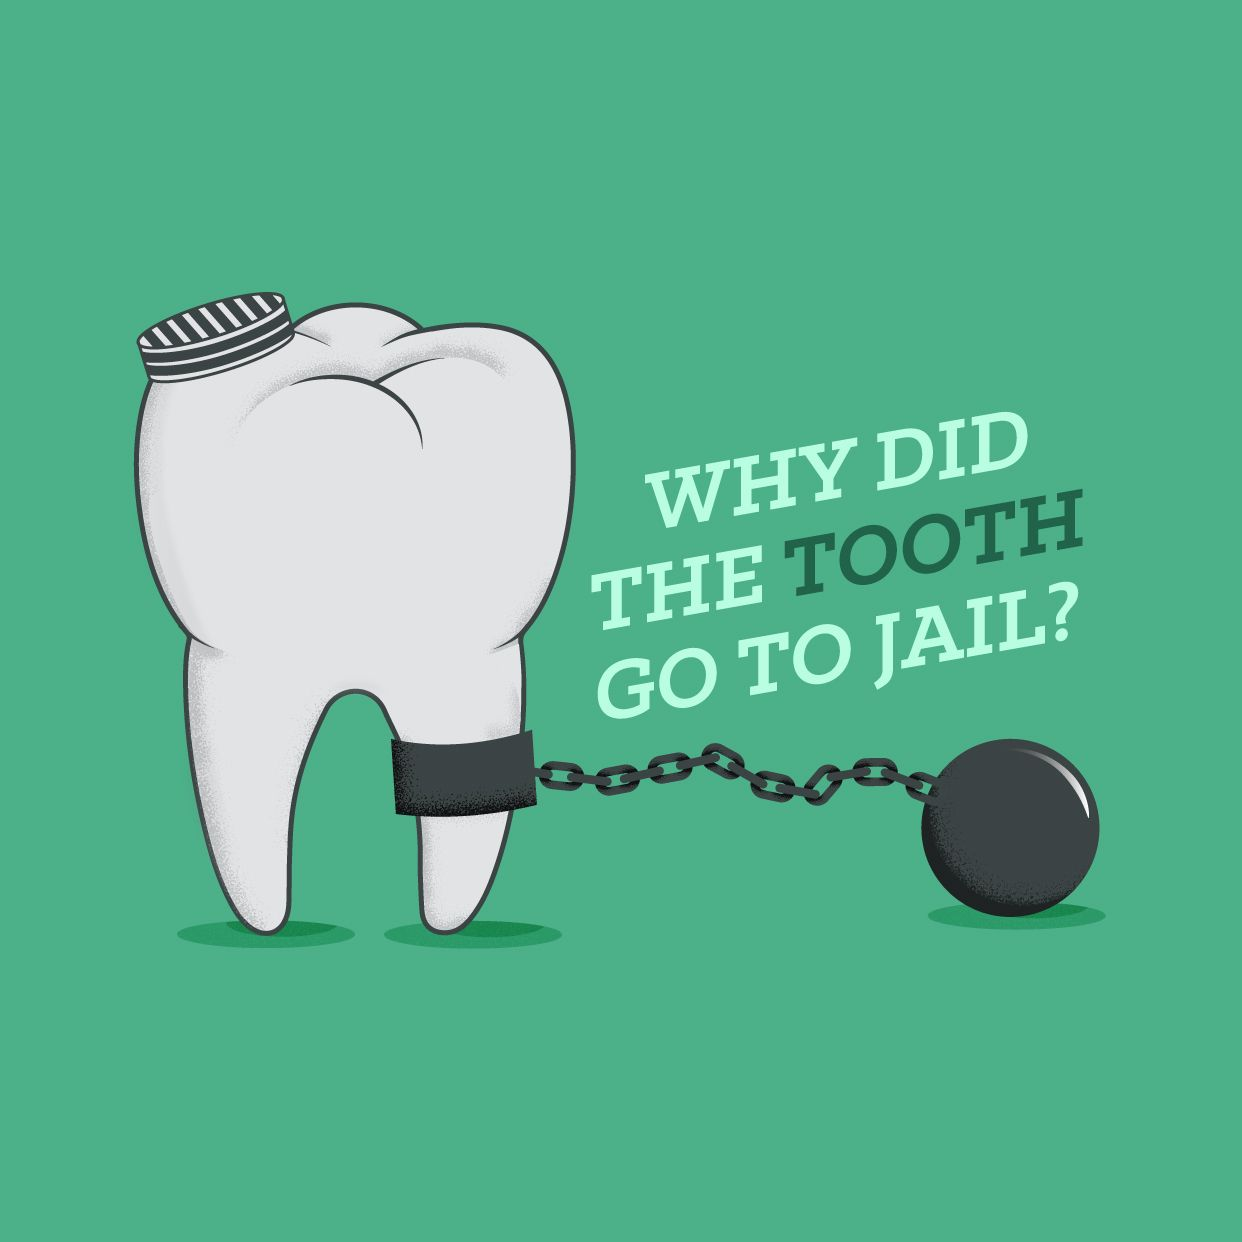 WHY DID THE tooth go to jail? INCISOR trading! What's your ...